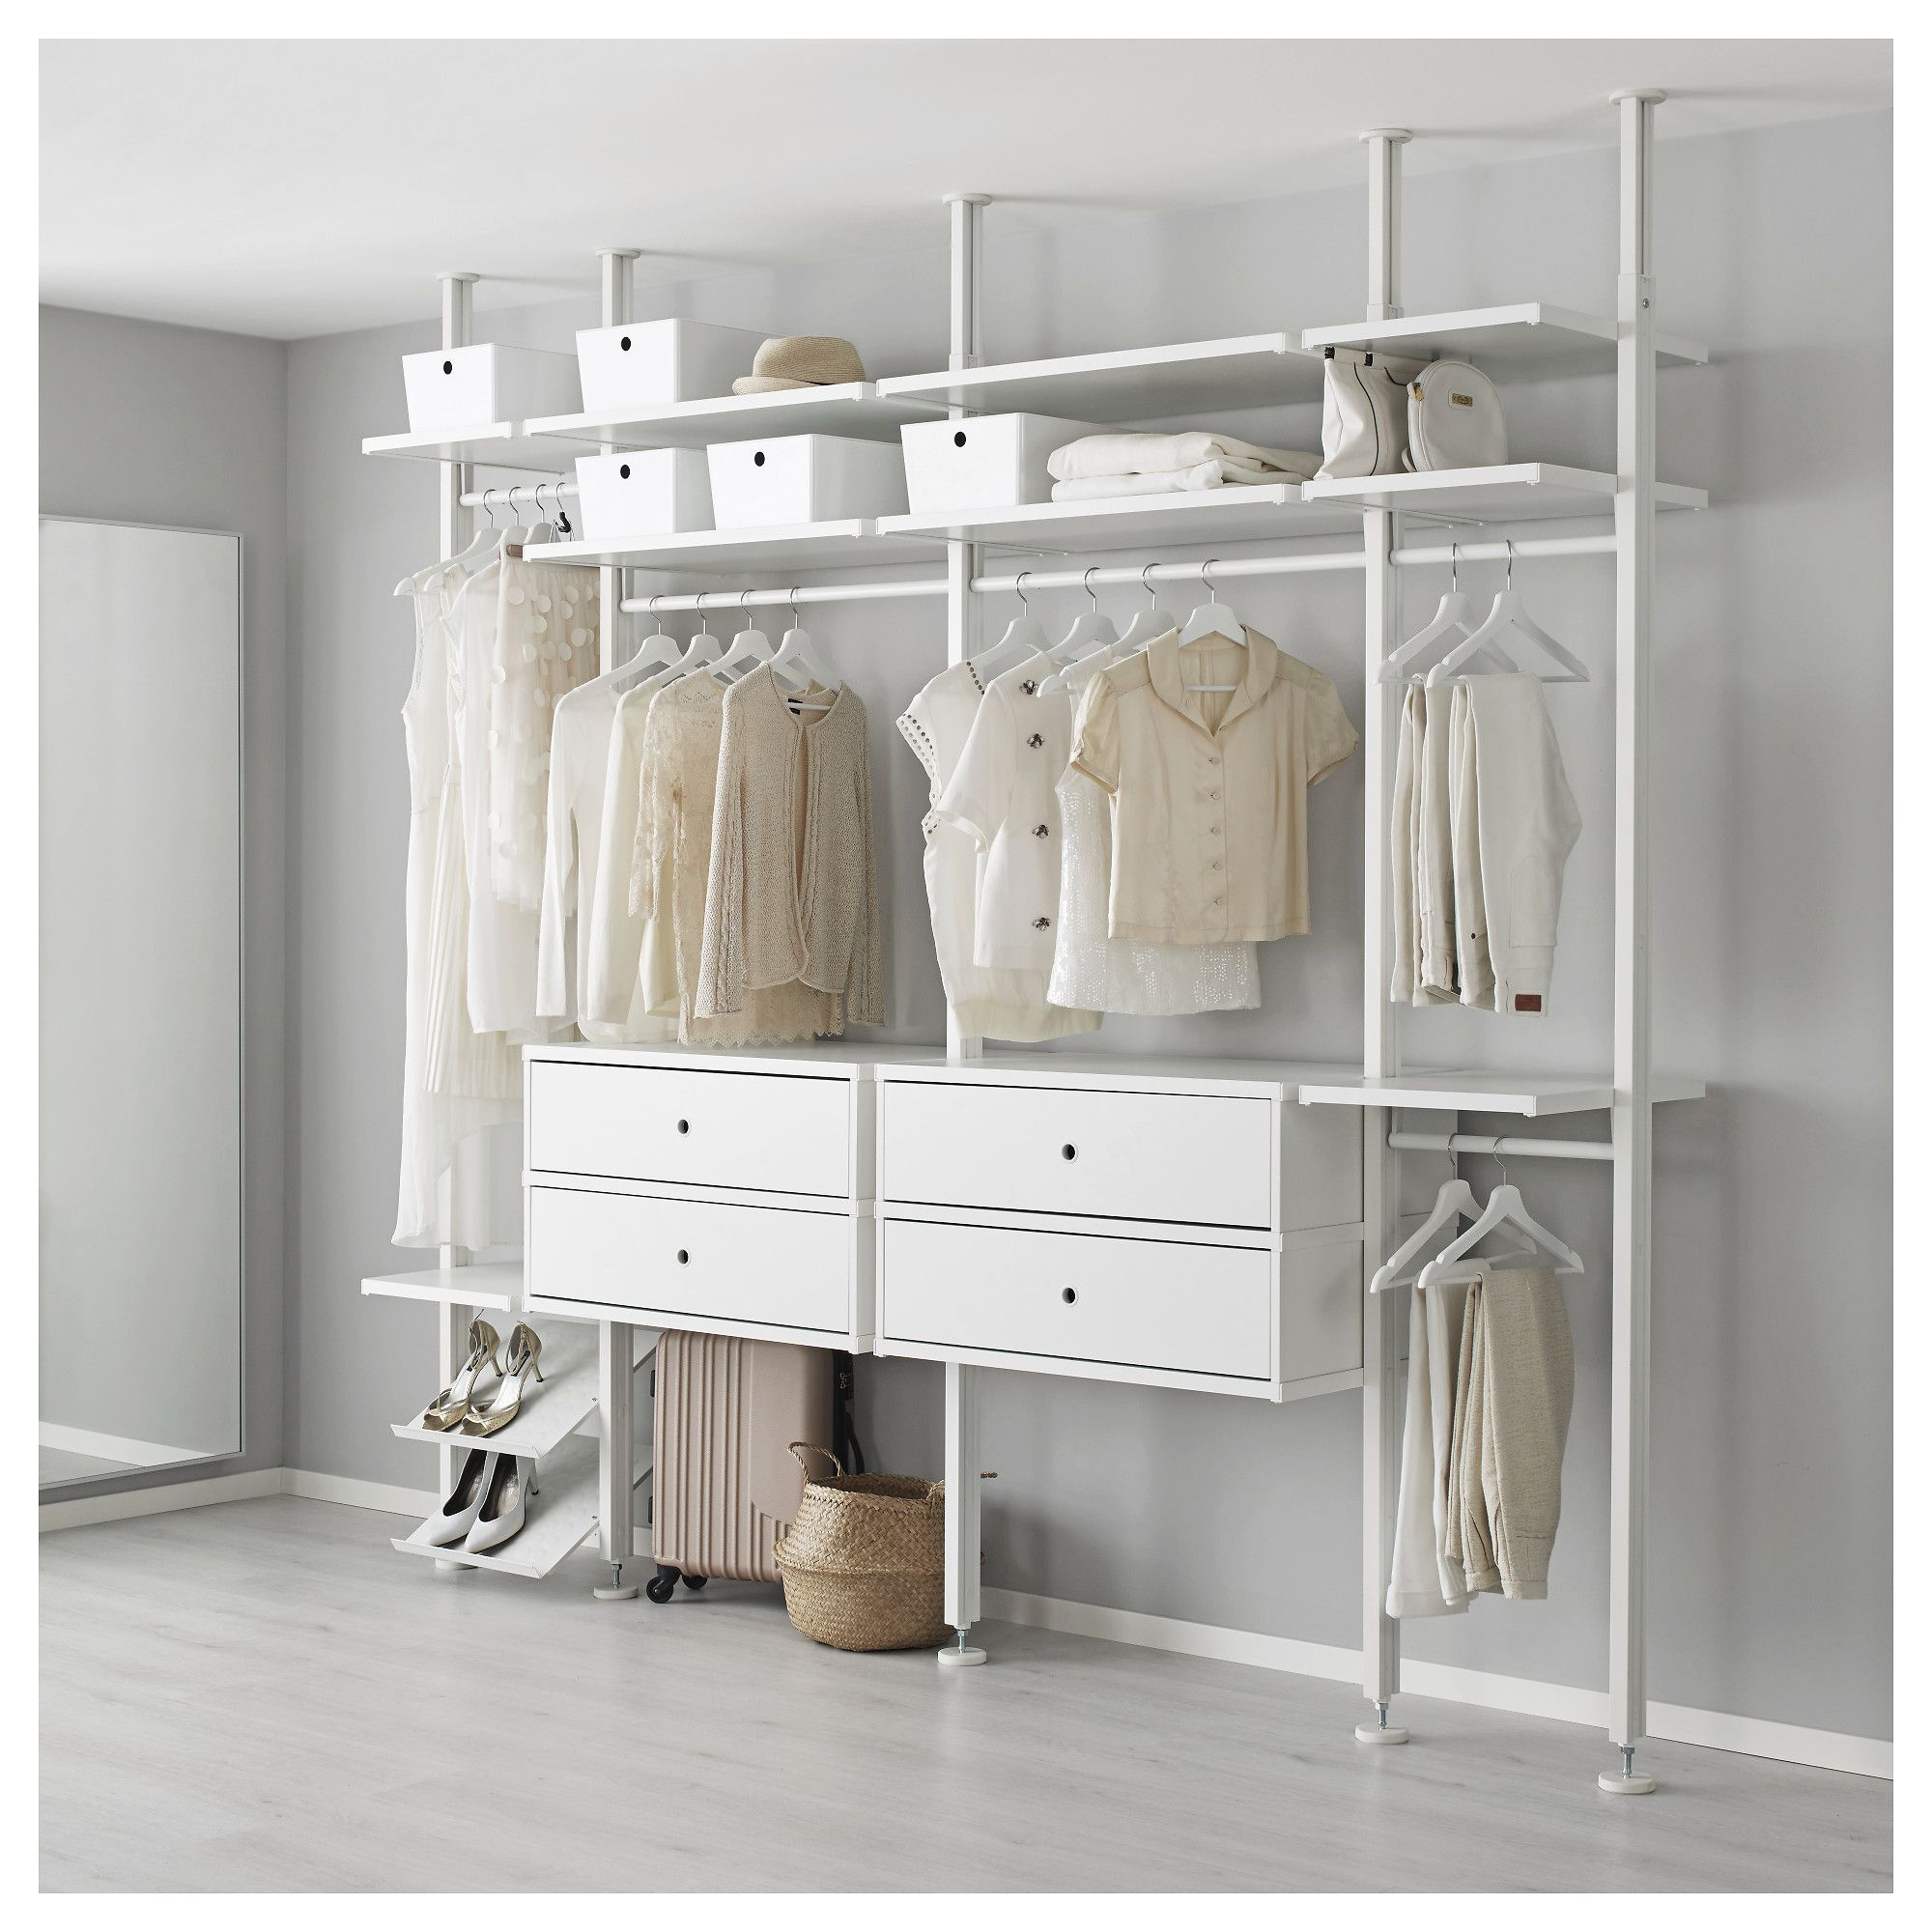 Furniture Kleiderschrank Offenes System Luxury Fene Elvarli 4 Sections White New Room Elvarli Offene Garderobe